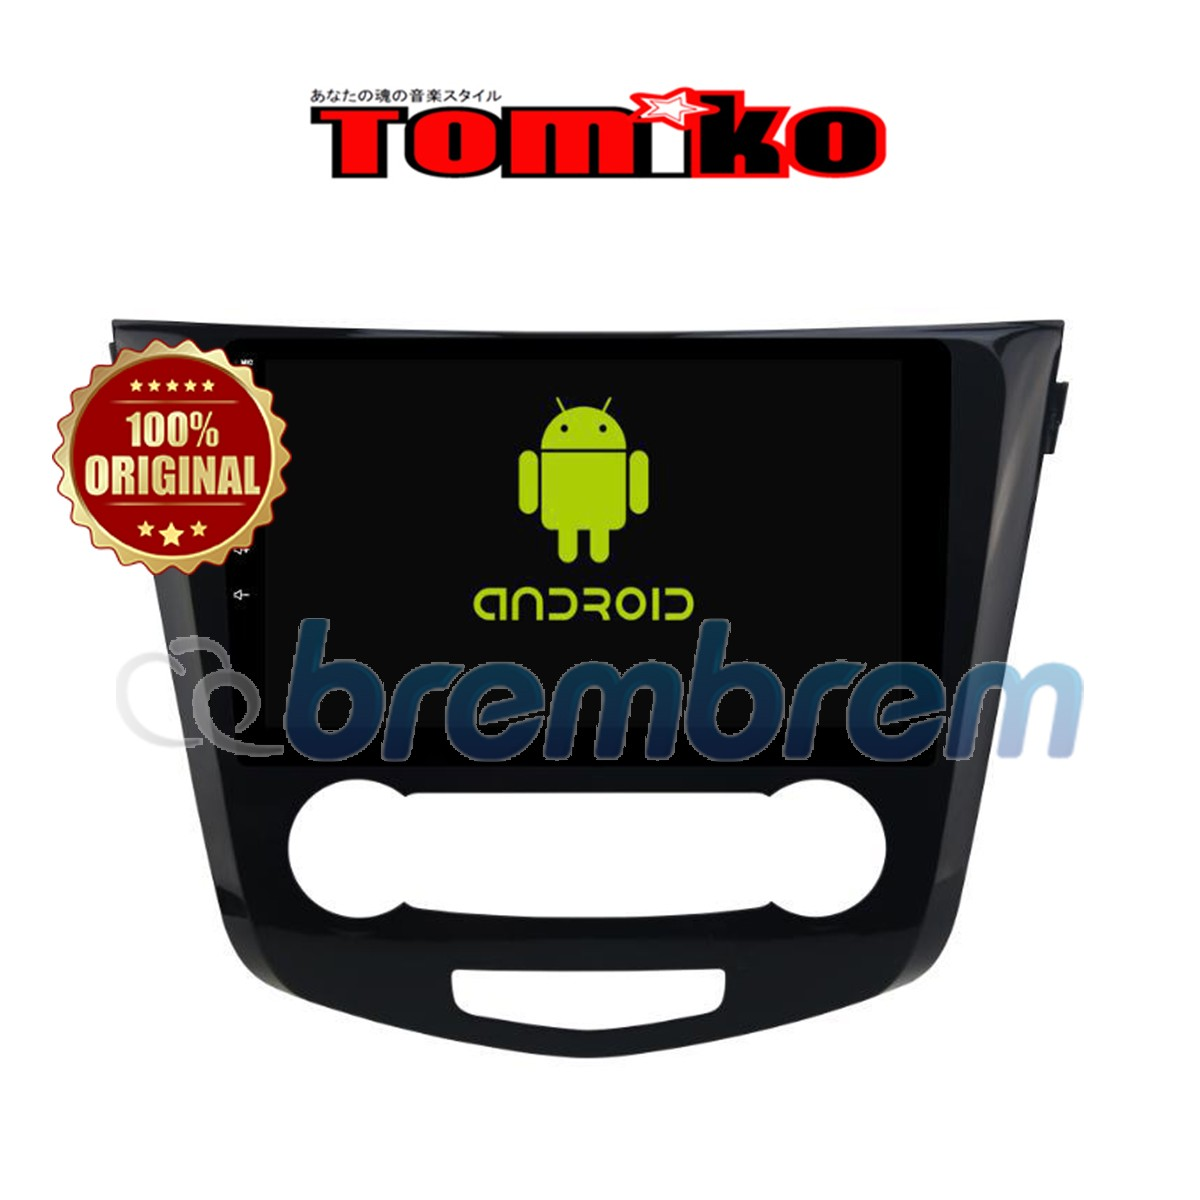 TOMIKO ANDROID 4G LTE NEW NISSAN XTRAIL 2000 CC 10 INCH - HEADUNIT OEM